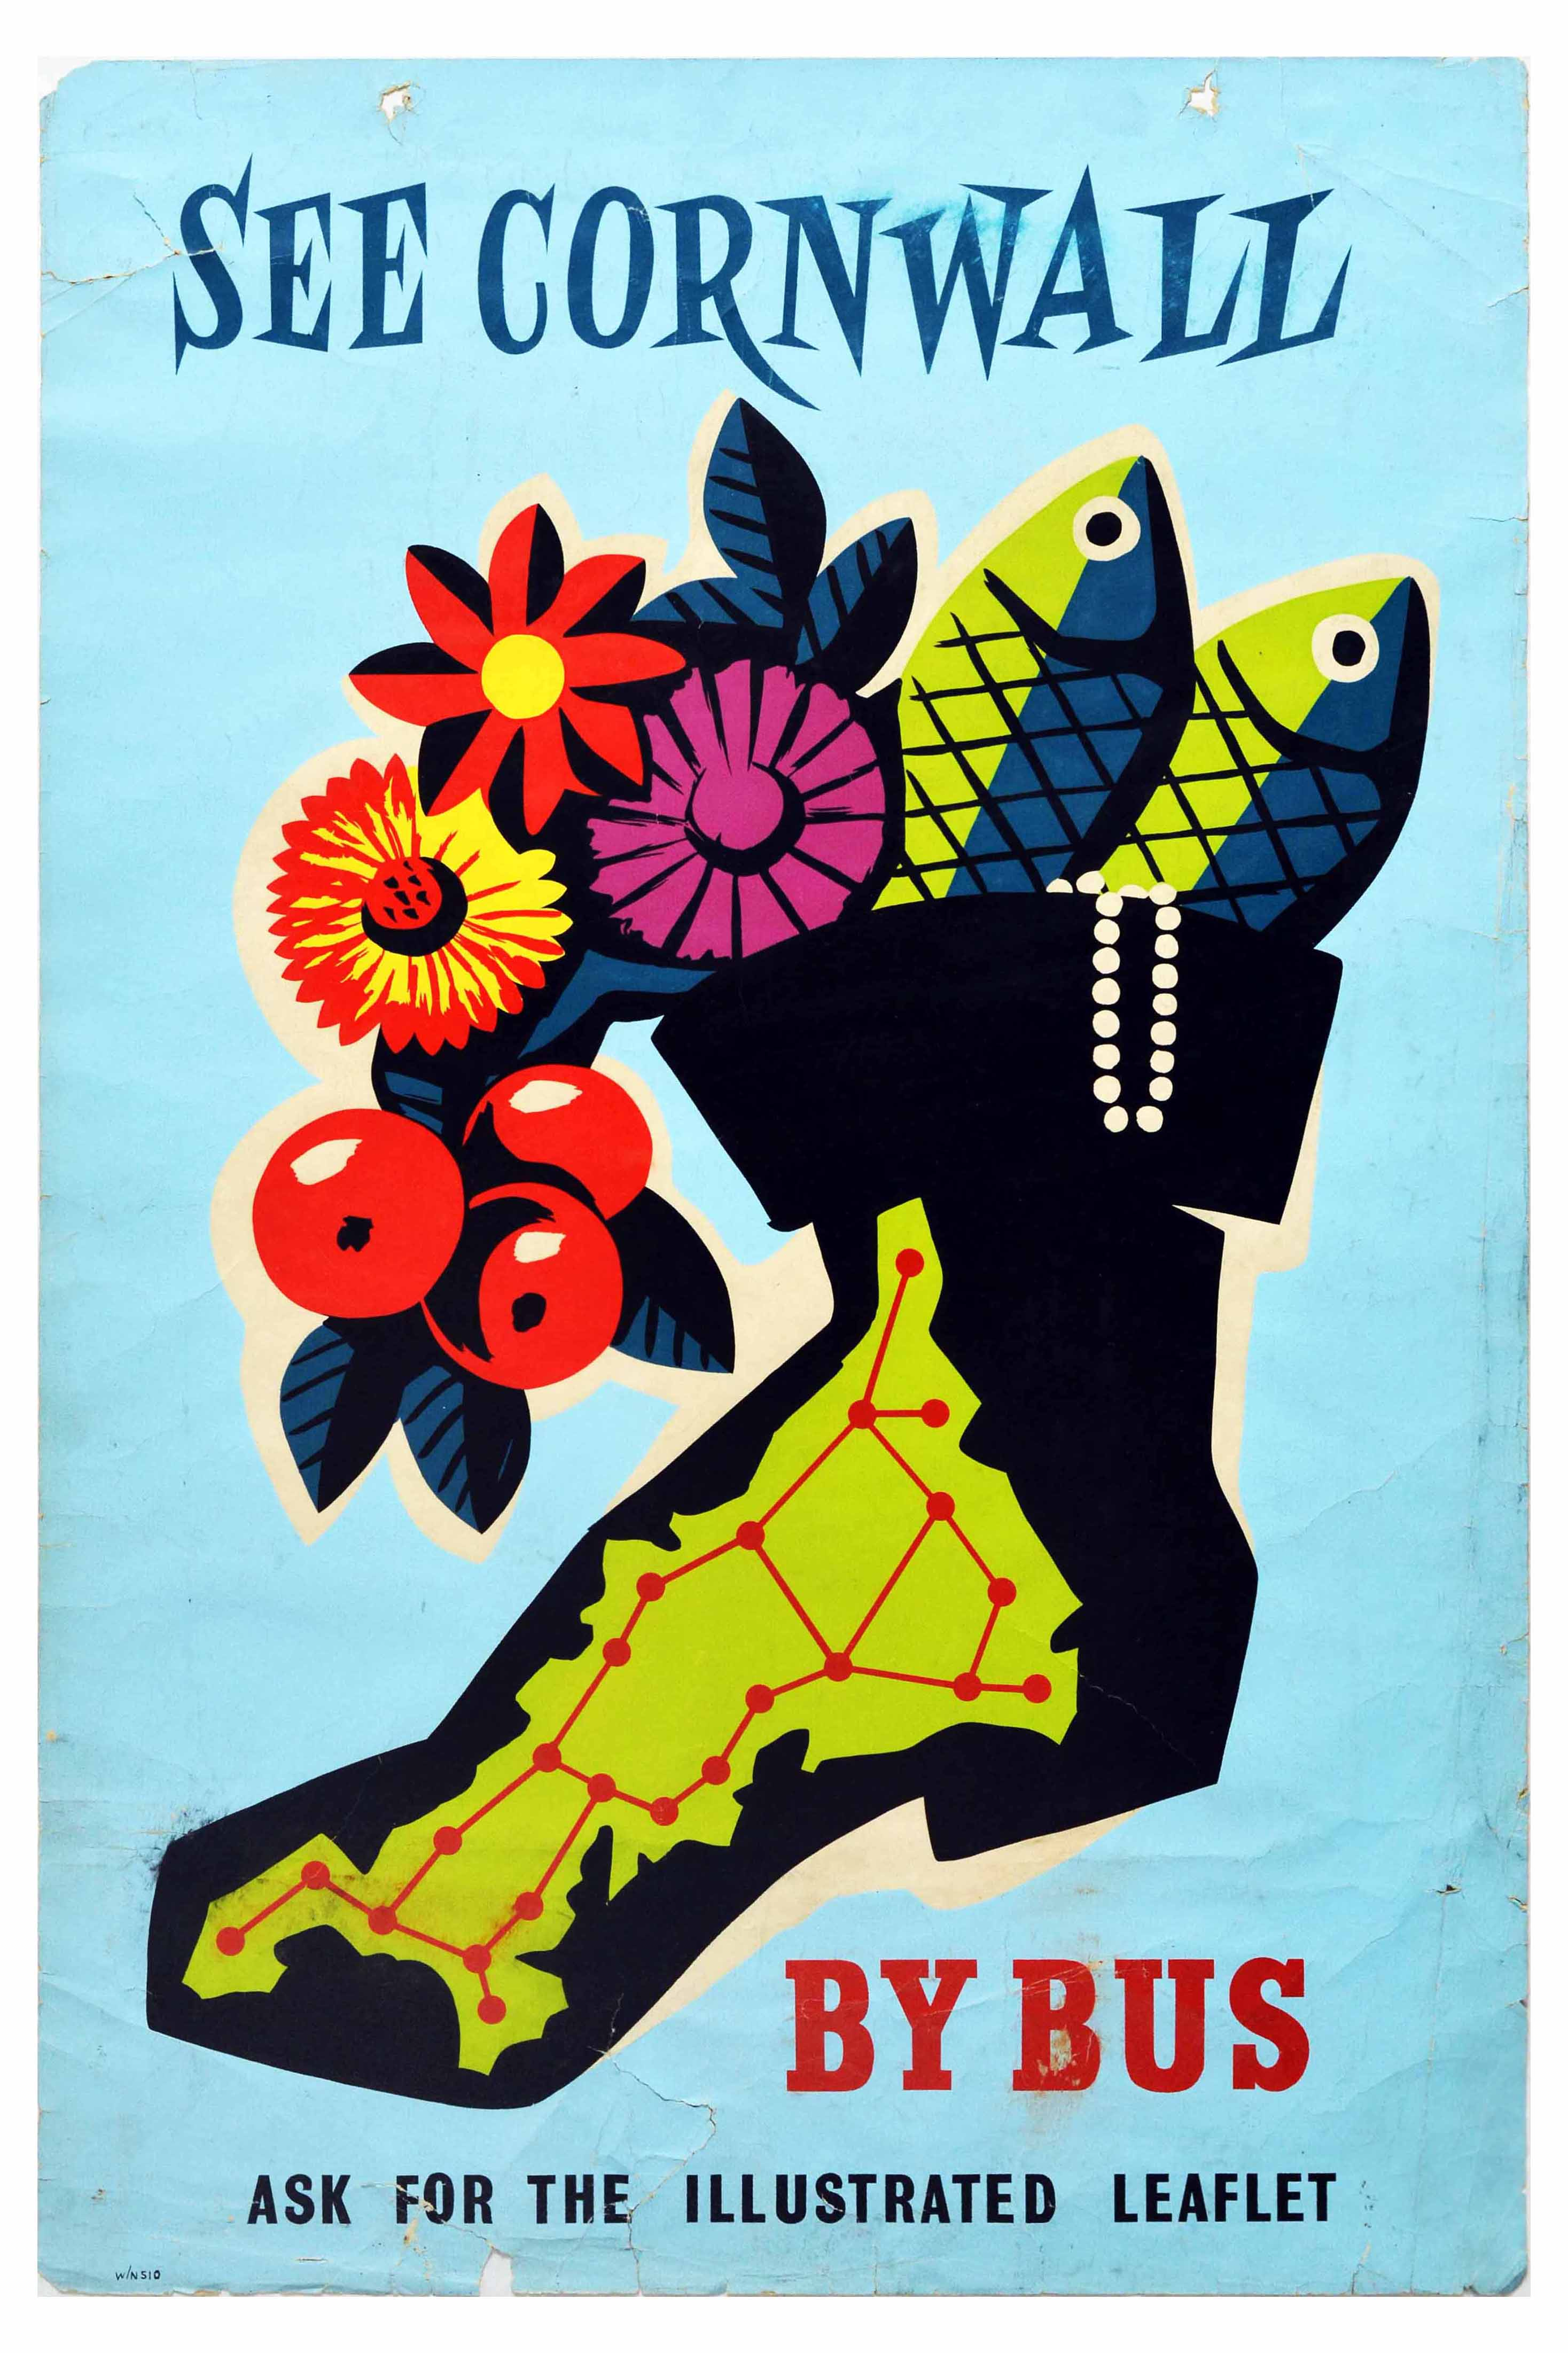 Travel Poster See Cornwall by Bus Midcentury Modern